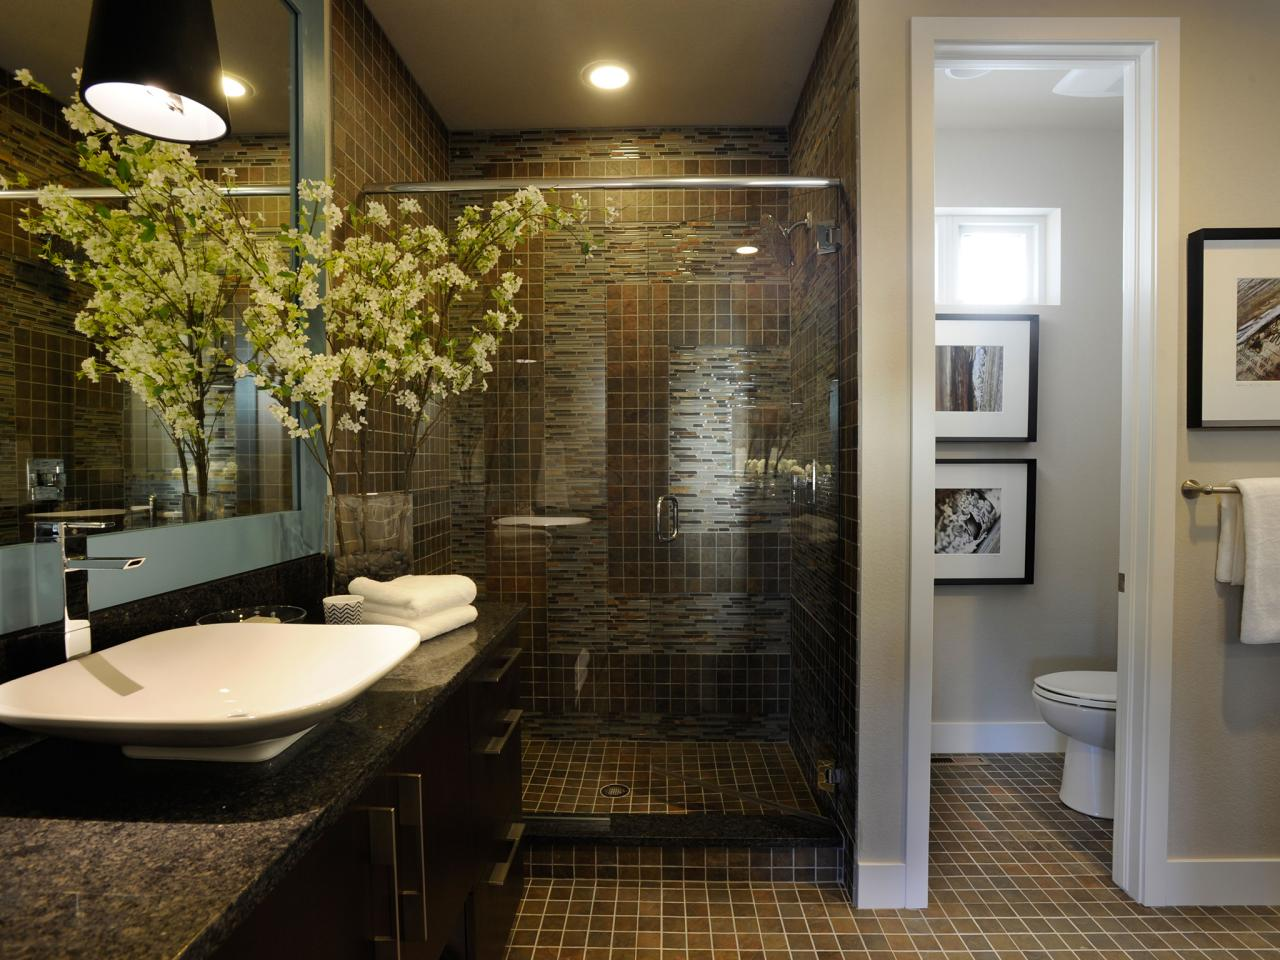 Bathroom designs for small master bathrooms - Bathroom Space Planning